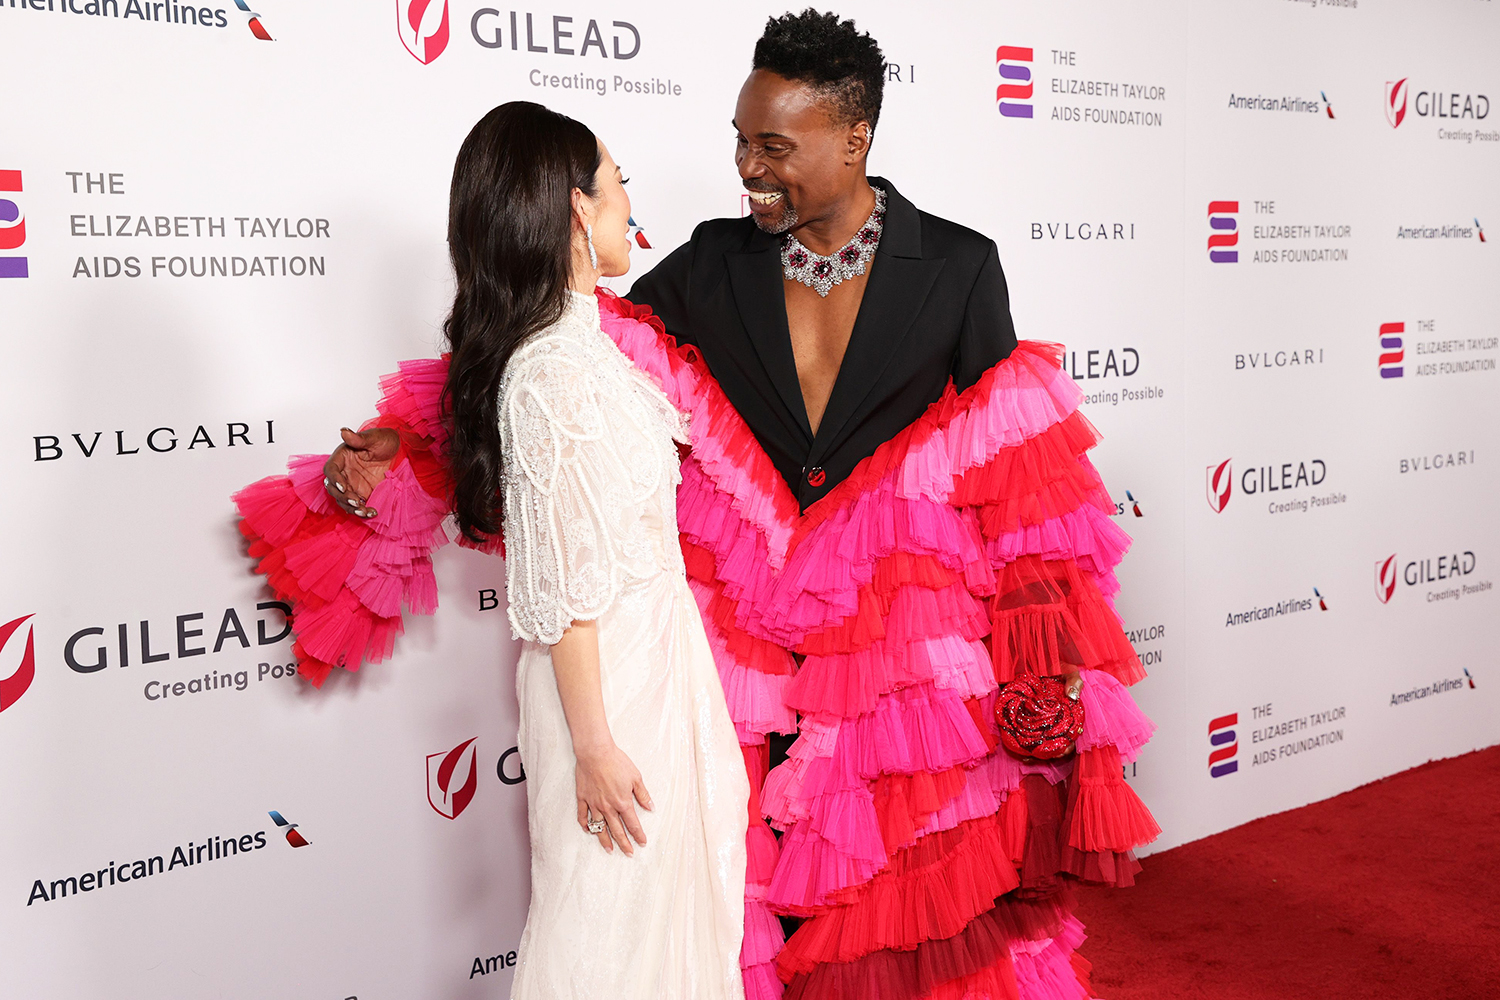 Christine Chiu and Billy Porter attend The Elizabeth Taylor Ball To End AIDS on September 17, 2021 in West Hollywood, California.